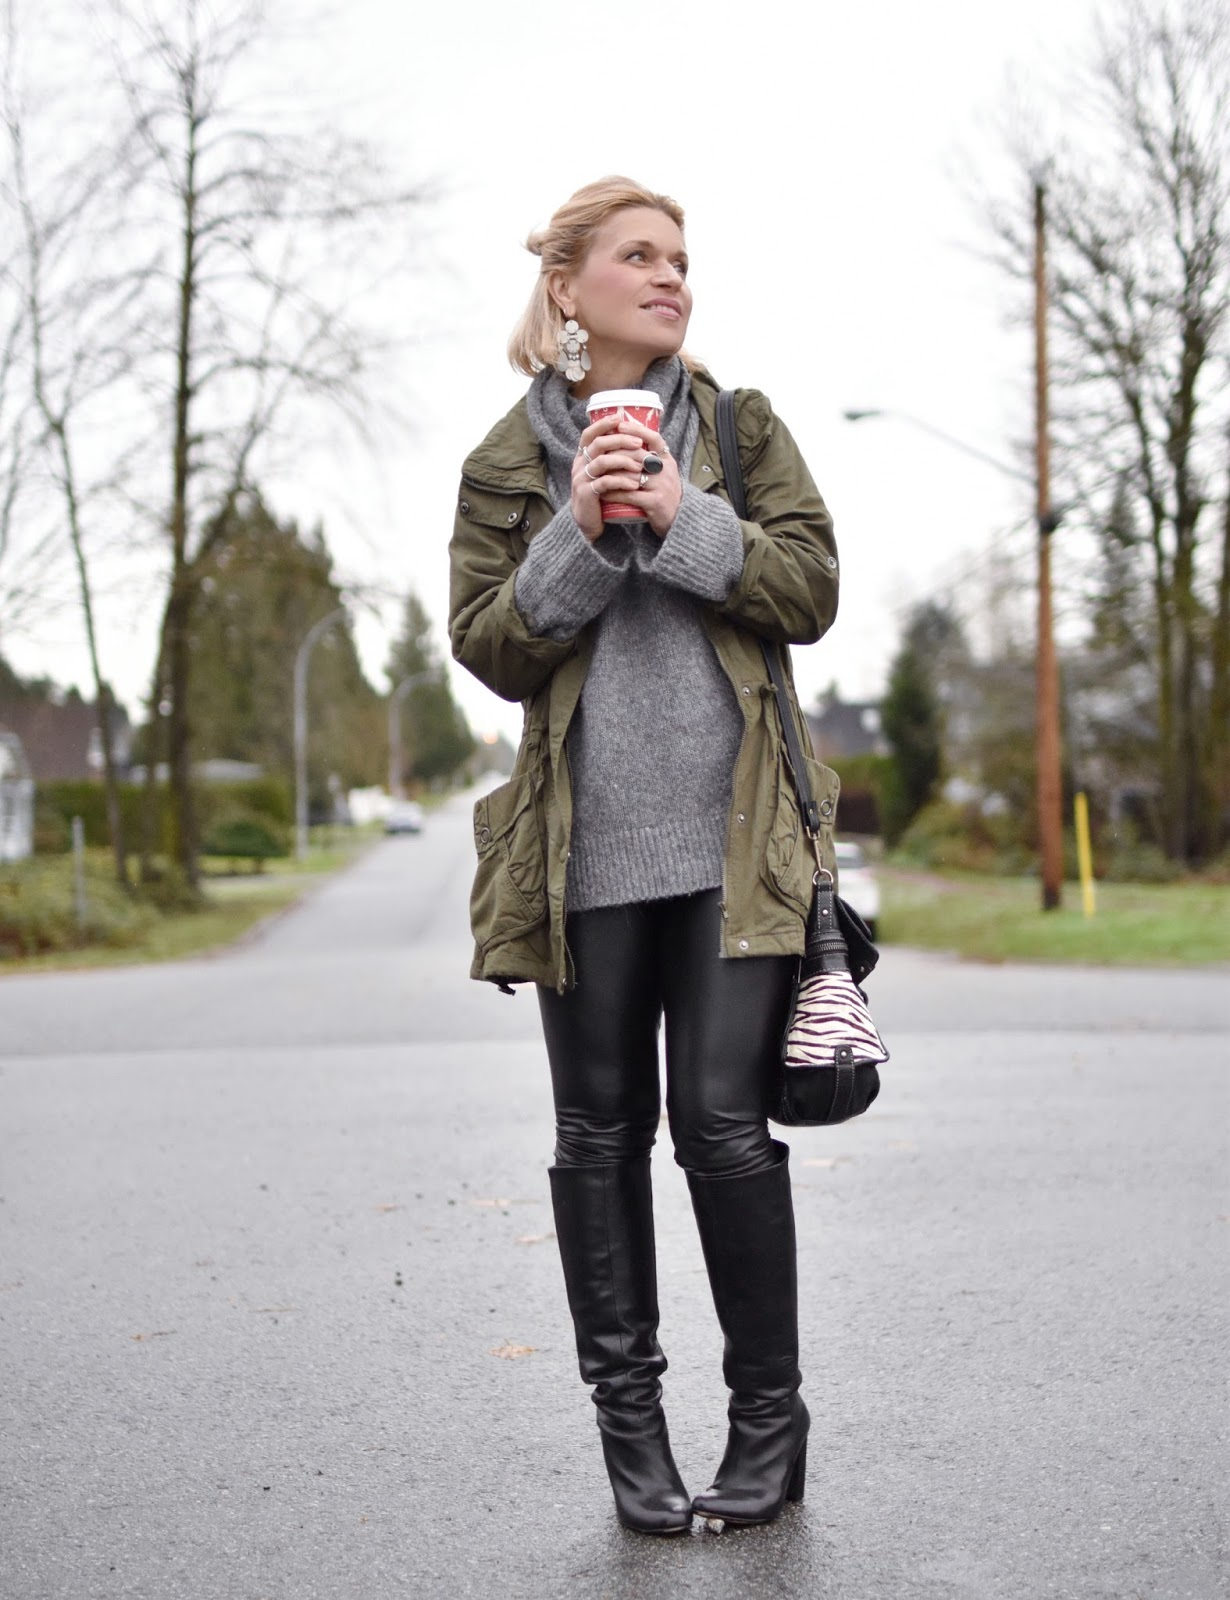 Monika Faulkner outfit inspiration - styling a chunky wool sweater with an army-style jacket, faux-leather leggings, and knee boots